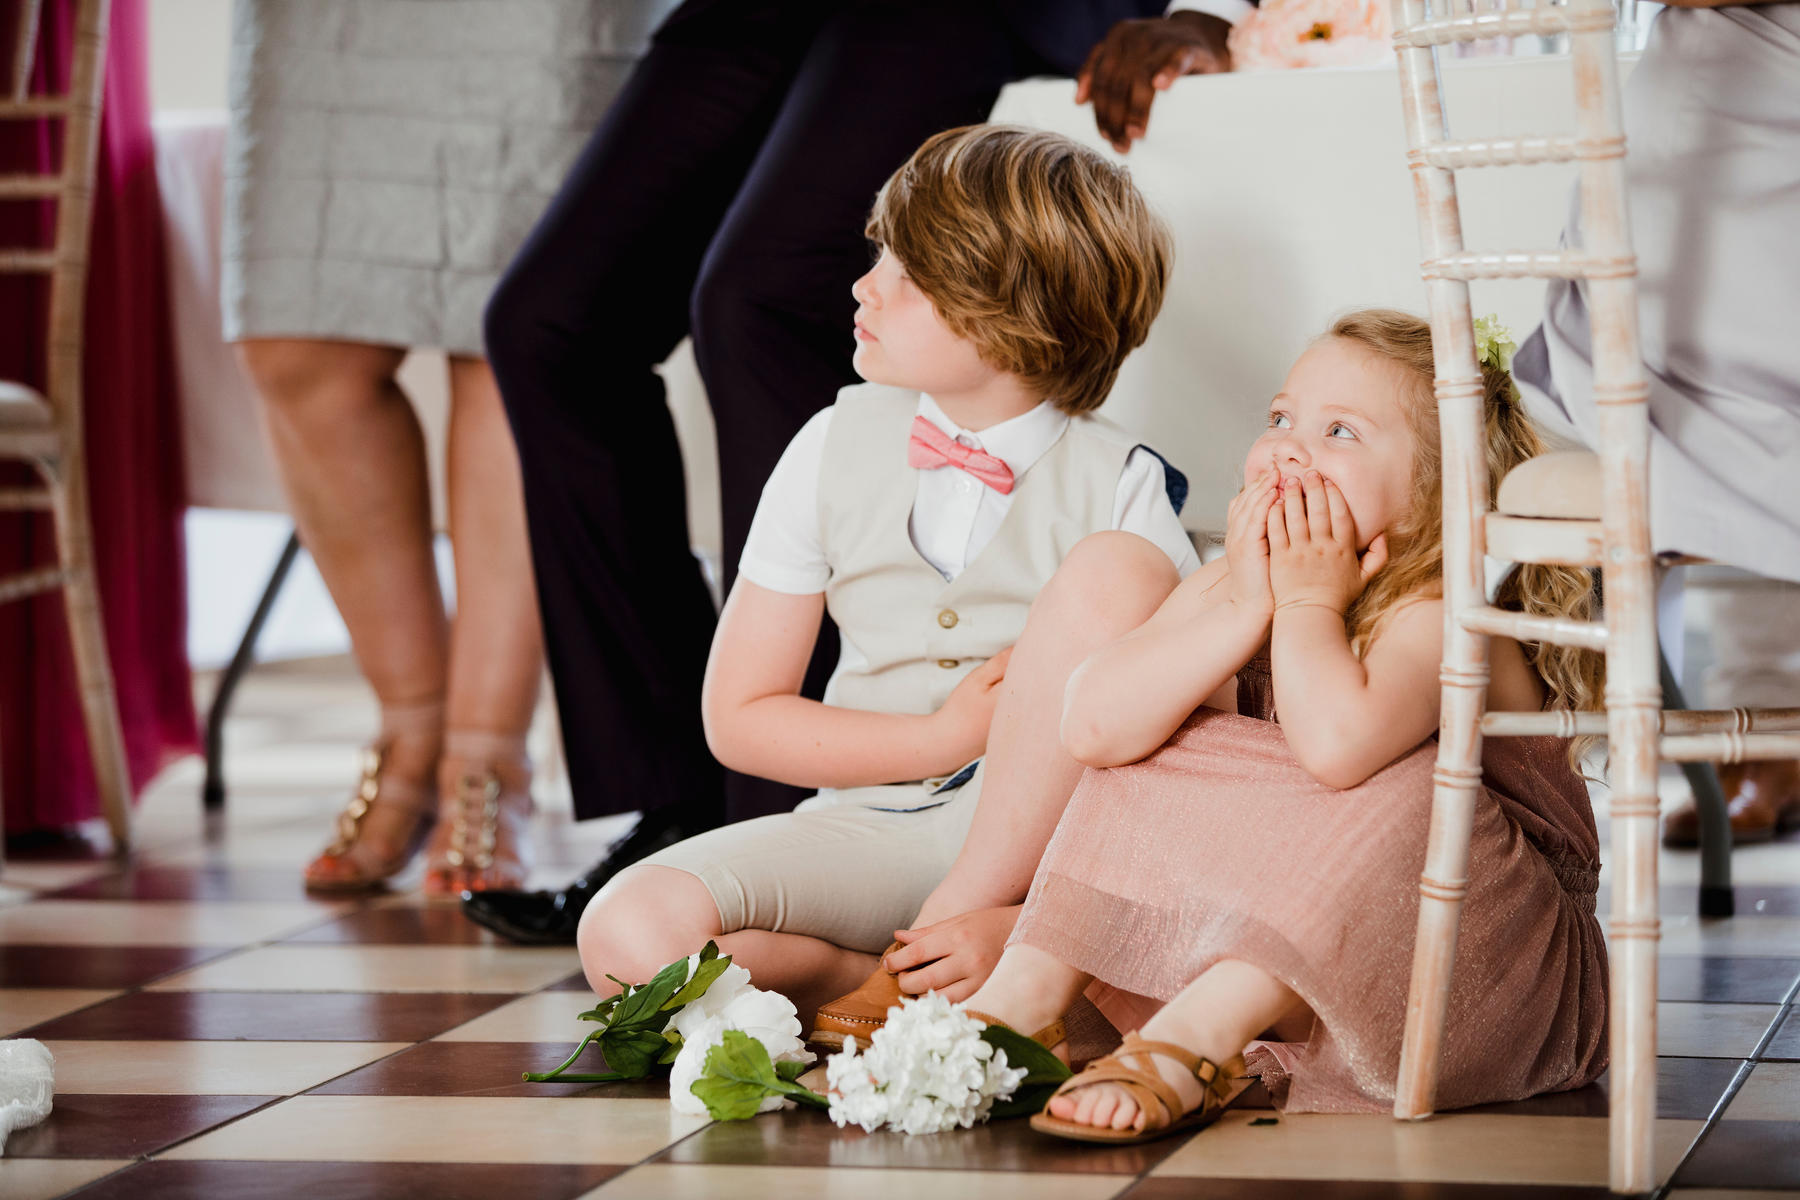 6 Foolproof Tips for When Your Kid's a Flower Girl or Ring Bearer